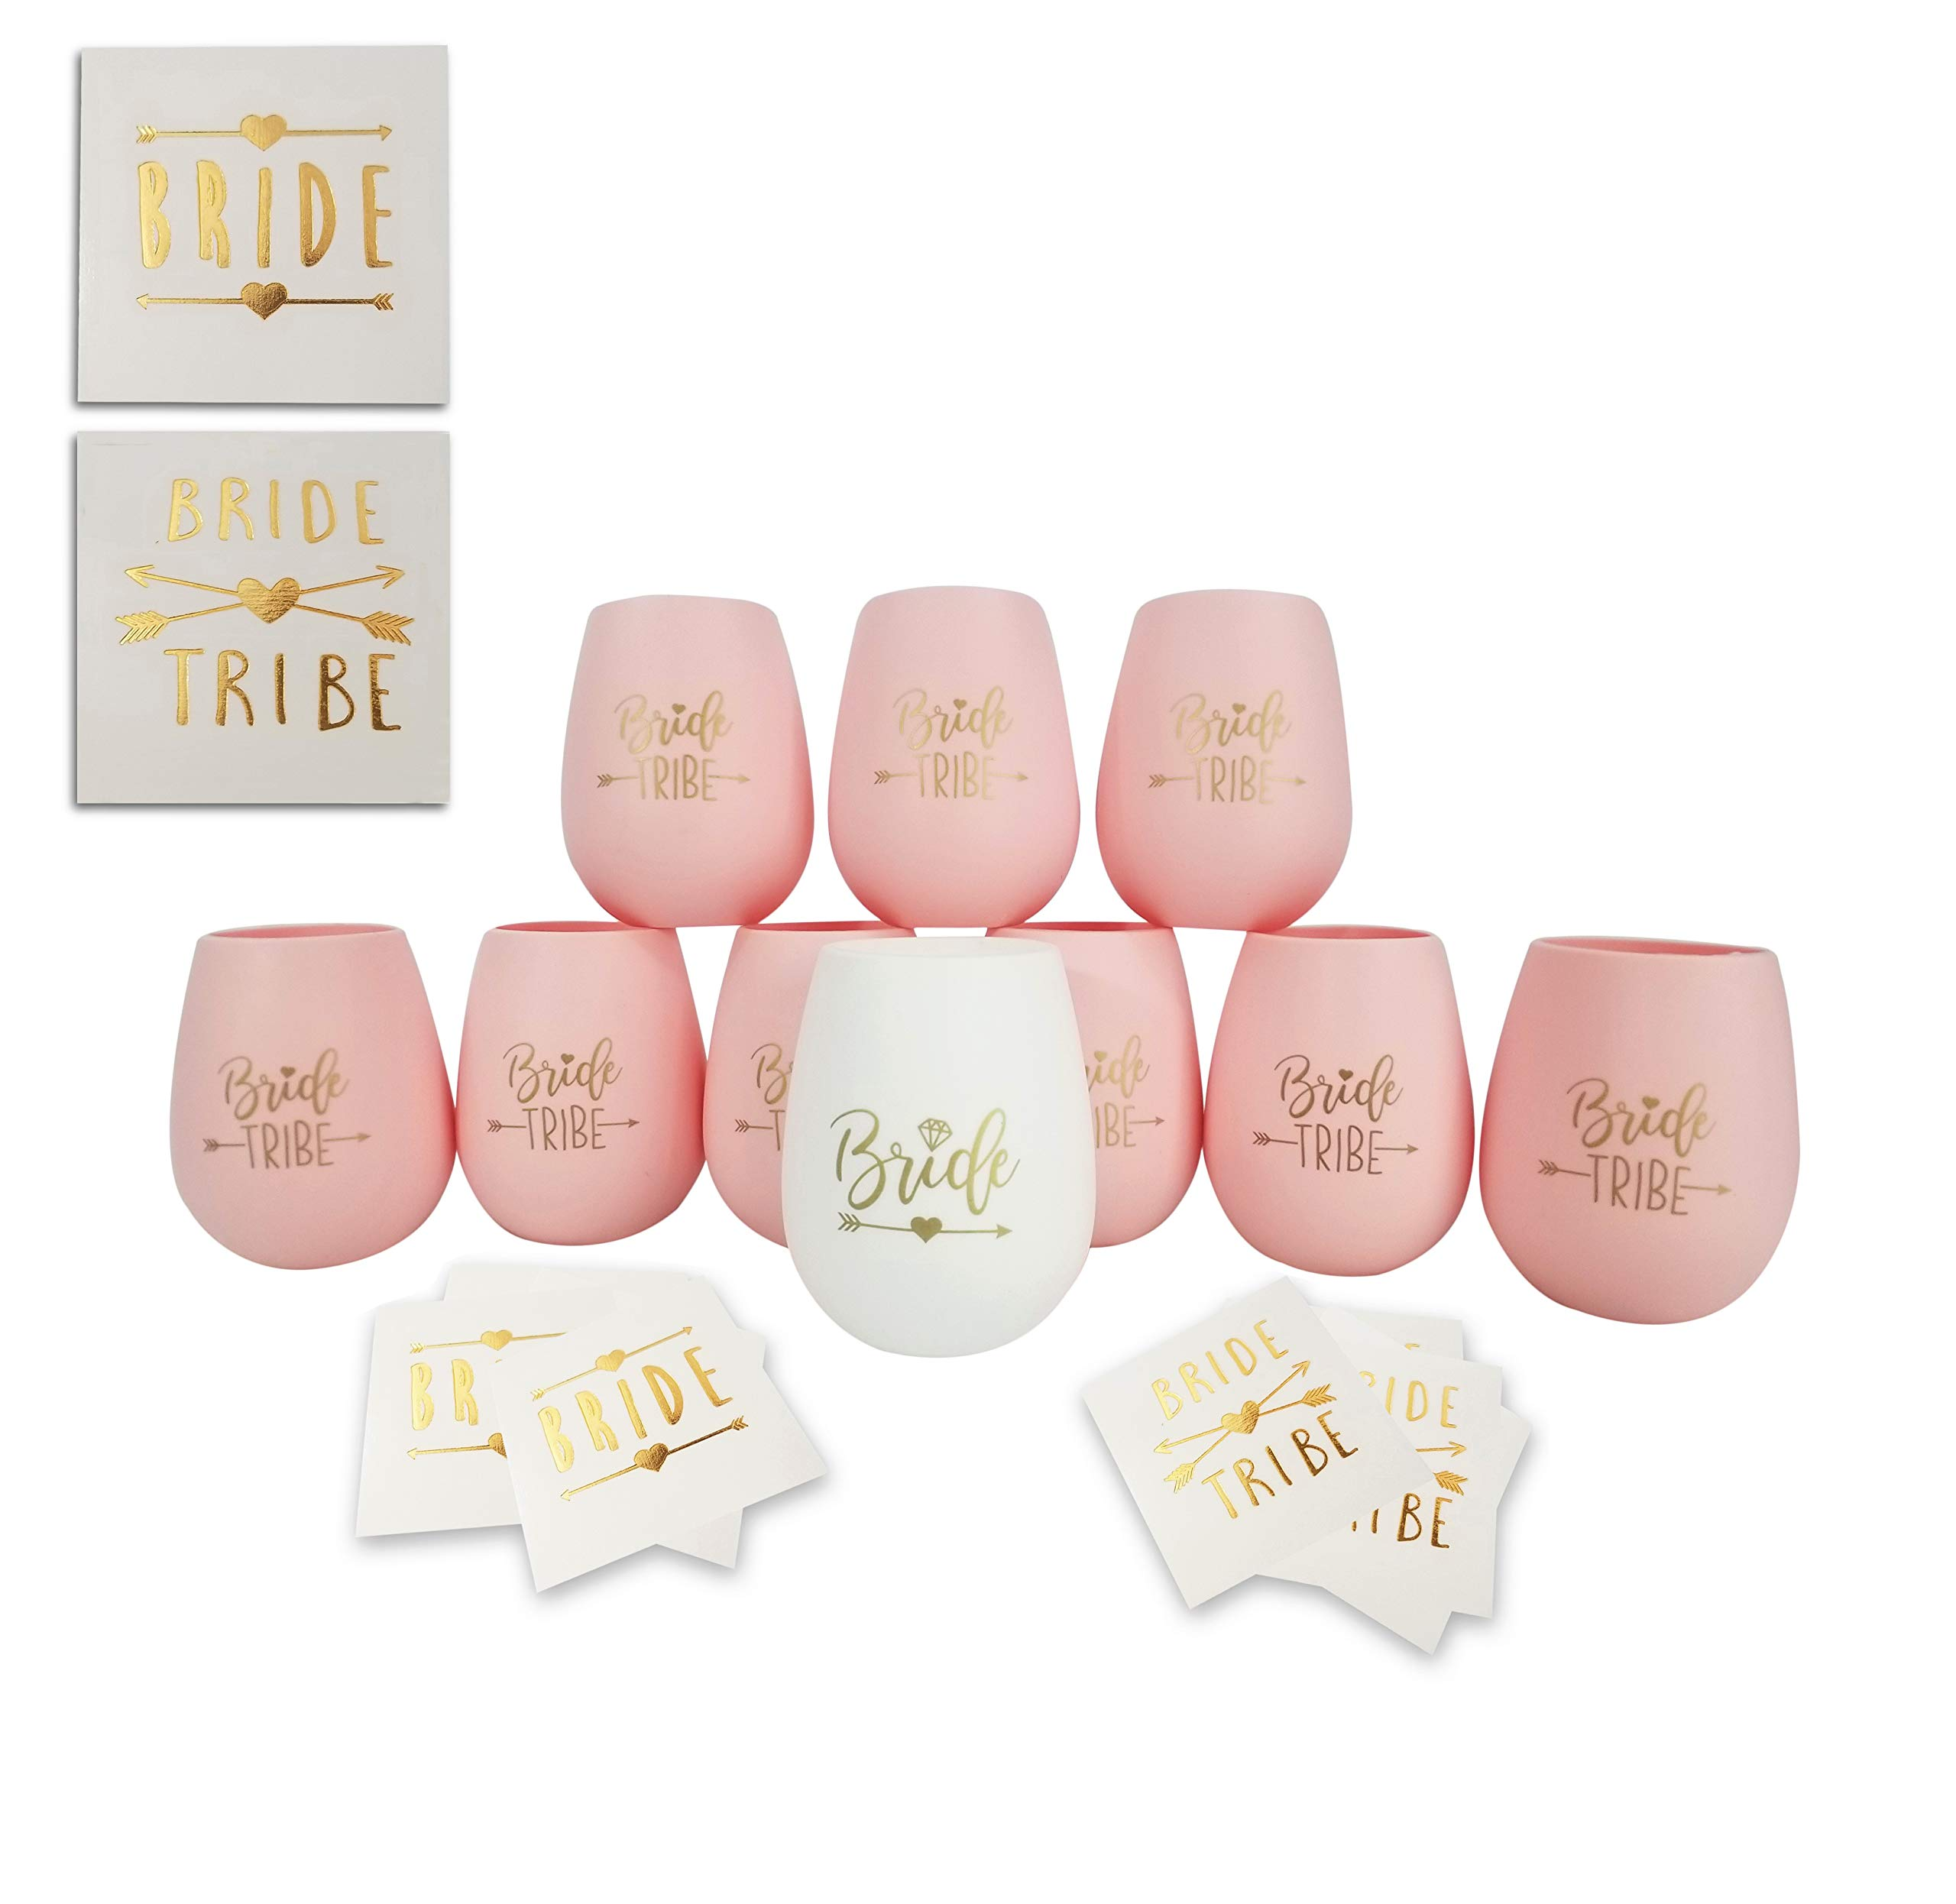 Bride Tribe Bachelorette Party Silicone Wine Glass - Set of 10 Pink and Gold Bundle with Temporary Tattoos - Bridesmaid Wedding Gift Party Favors - Bachelorette Party Supplies ...